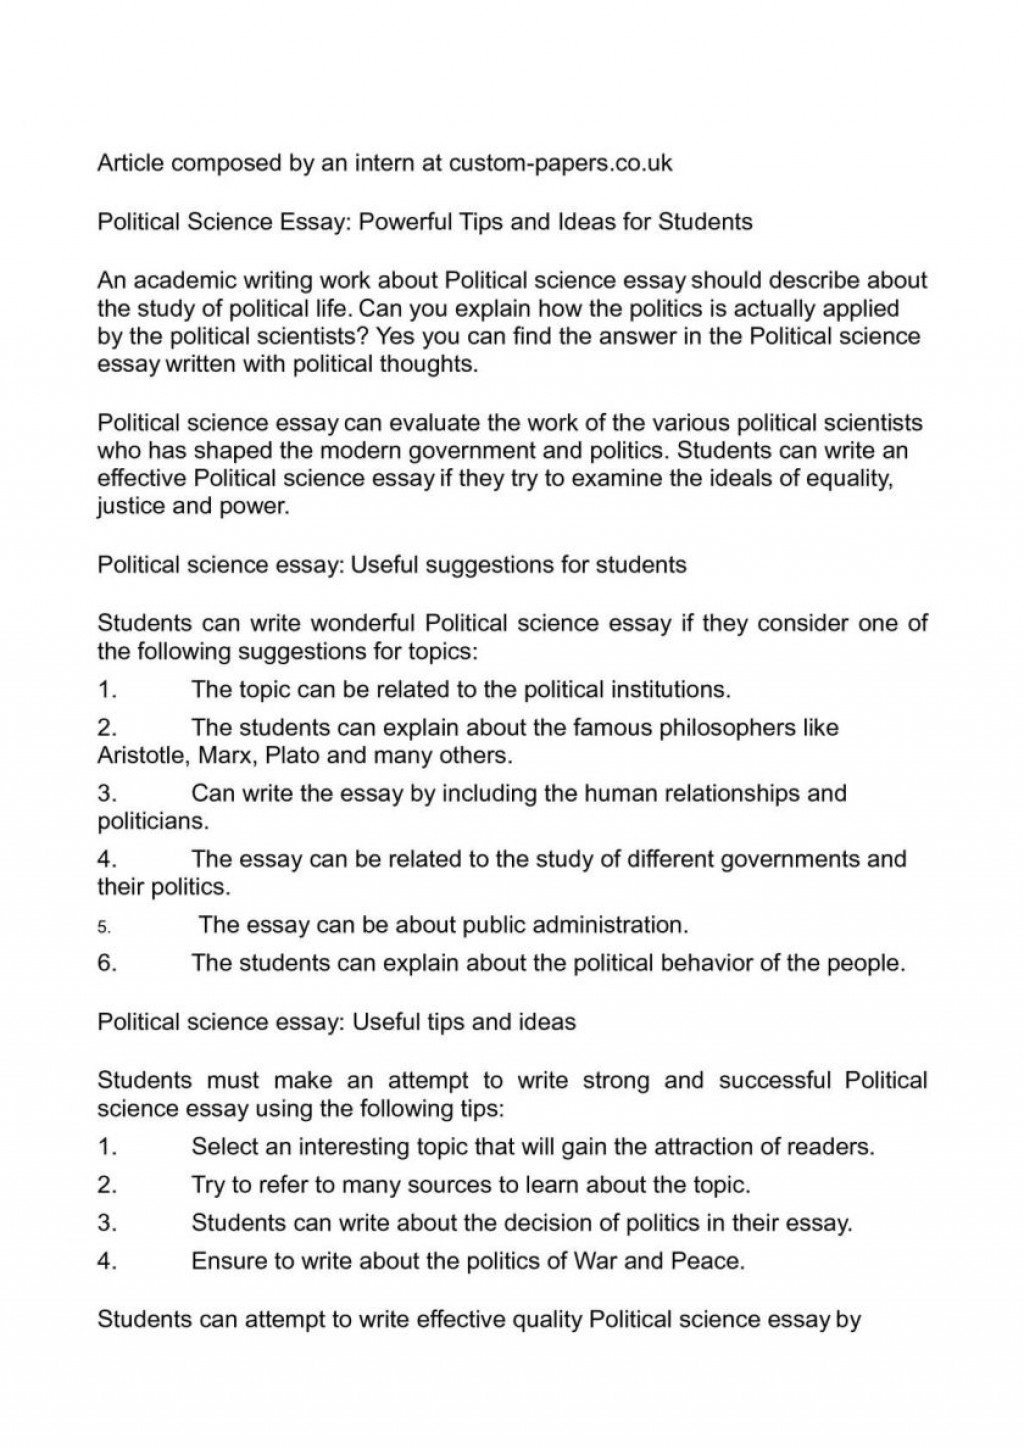 010 Essay Macbeth Ideas Science Argumentative Topics Good Photo Easy To Write Abo About Research Paper Personal Descriptive Persuasive College Synthesis Informative Narrative Shocking In A Health On Large